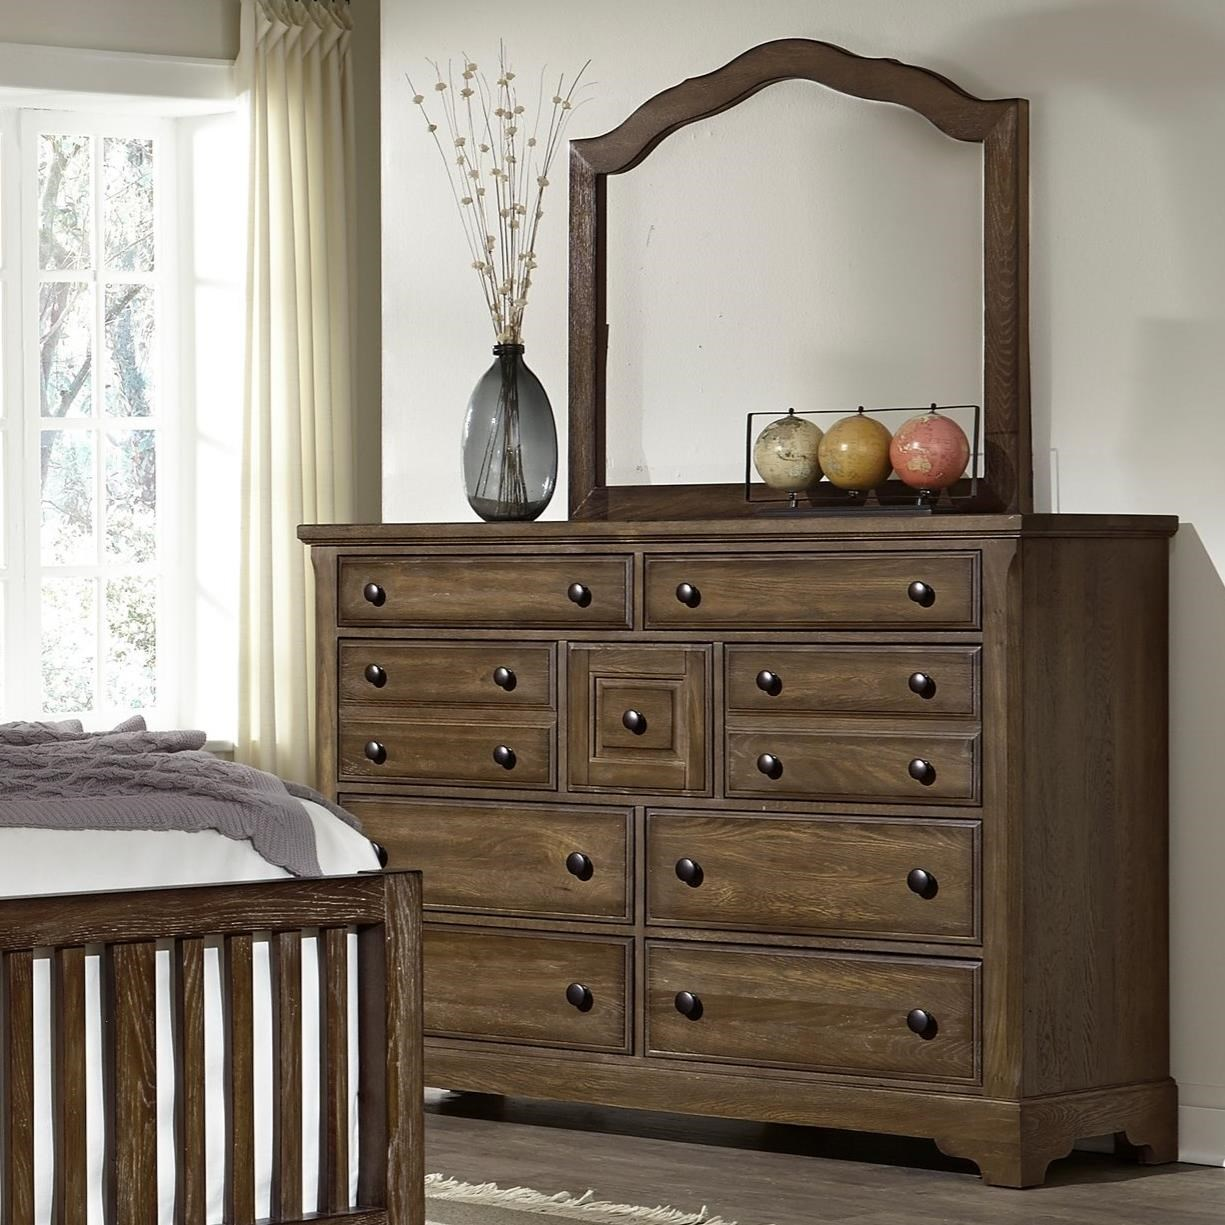 Artisan Choices Villa Triple Dresser & Arched Mirror by Artisan & Post at Crowley Furniture & Mattress